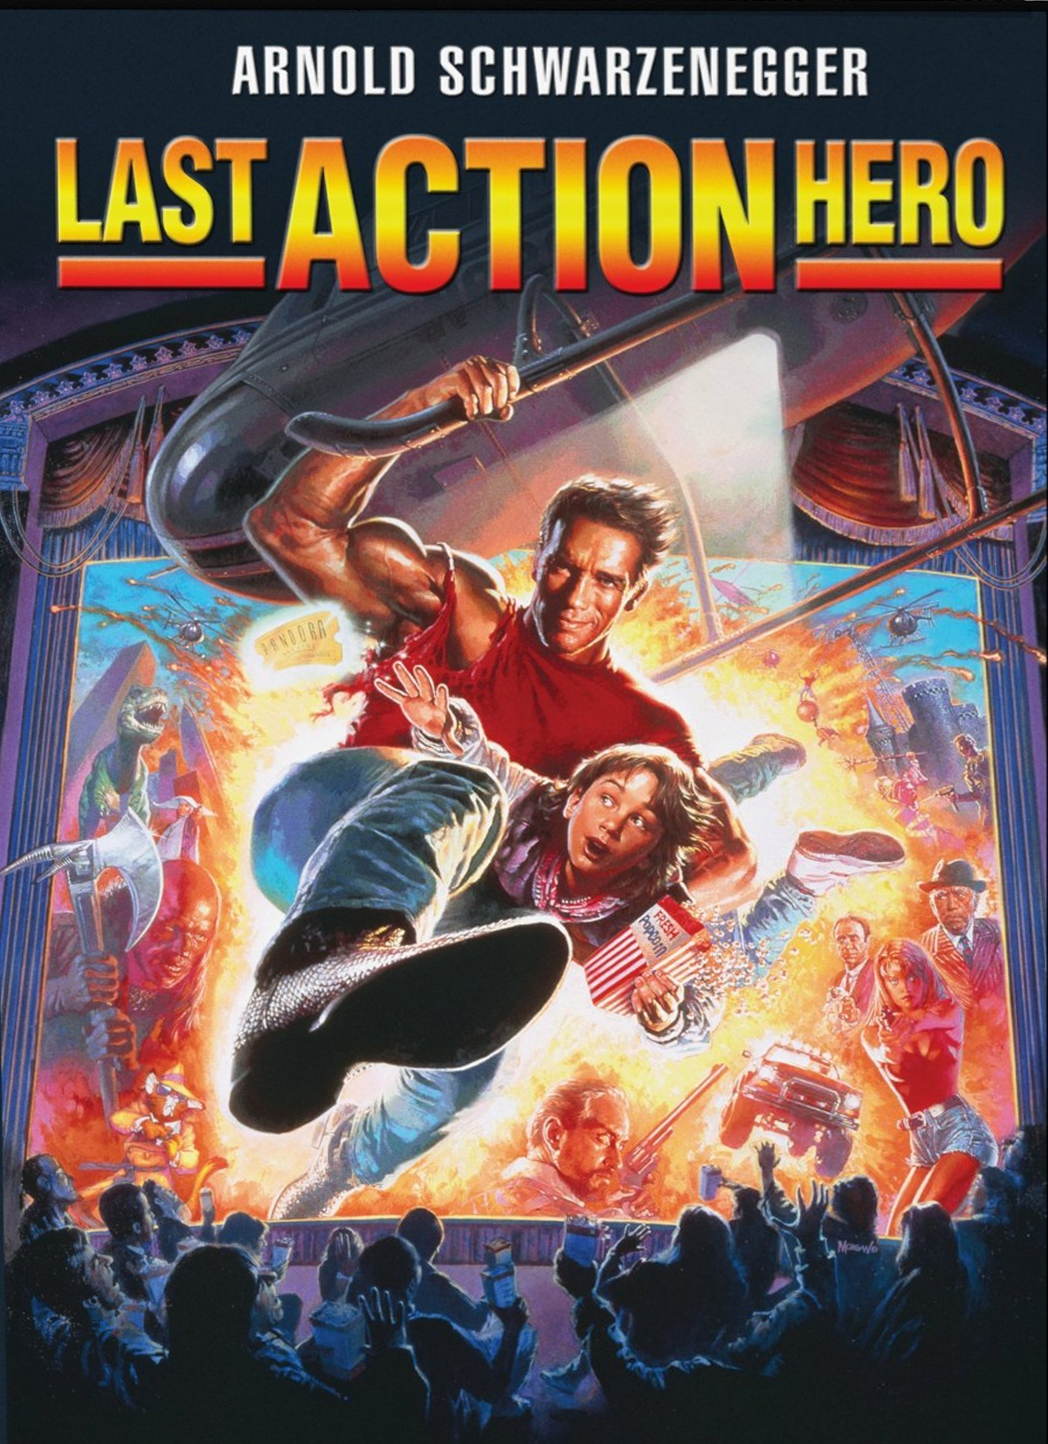 action movies hero arnold schwarzenegger a real life samson Last action hero is a 1993 american fantasy action-comedy film directed and  produced by john mctiernan it is a satire of the action genre and associated  clichés, containing several parodies of action films in the form of films within the  film the film stars arnold schwarzenegger as jack slater, a los angeles police   danny returns to the real world before the portal closes.